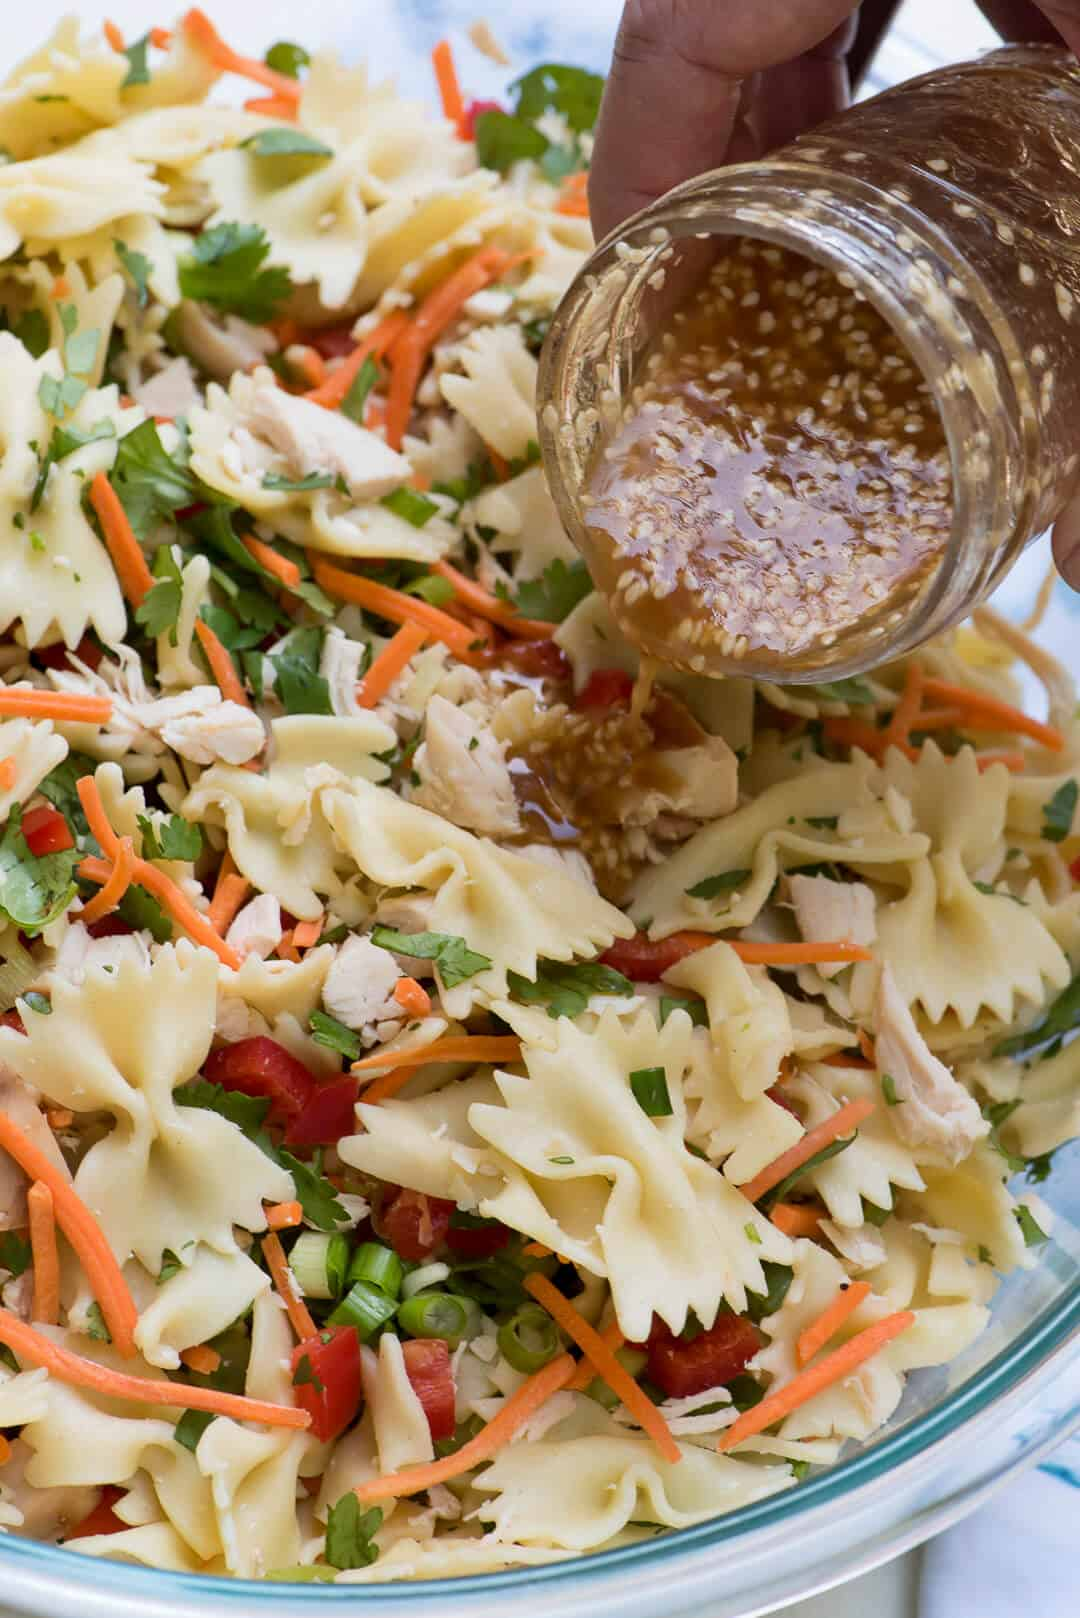 This Asian Pasta Salad has a satisfying crunchy texture and a completely addictive sesame-soy dressing that will have everyone coming back for seconds!